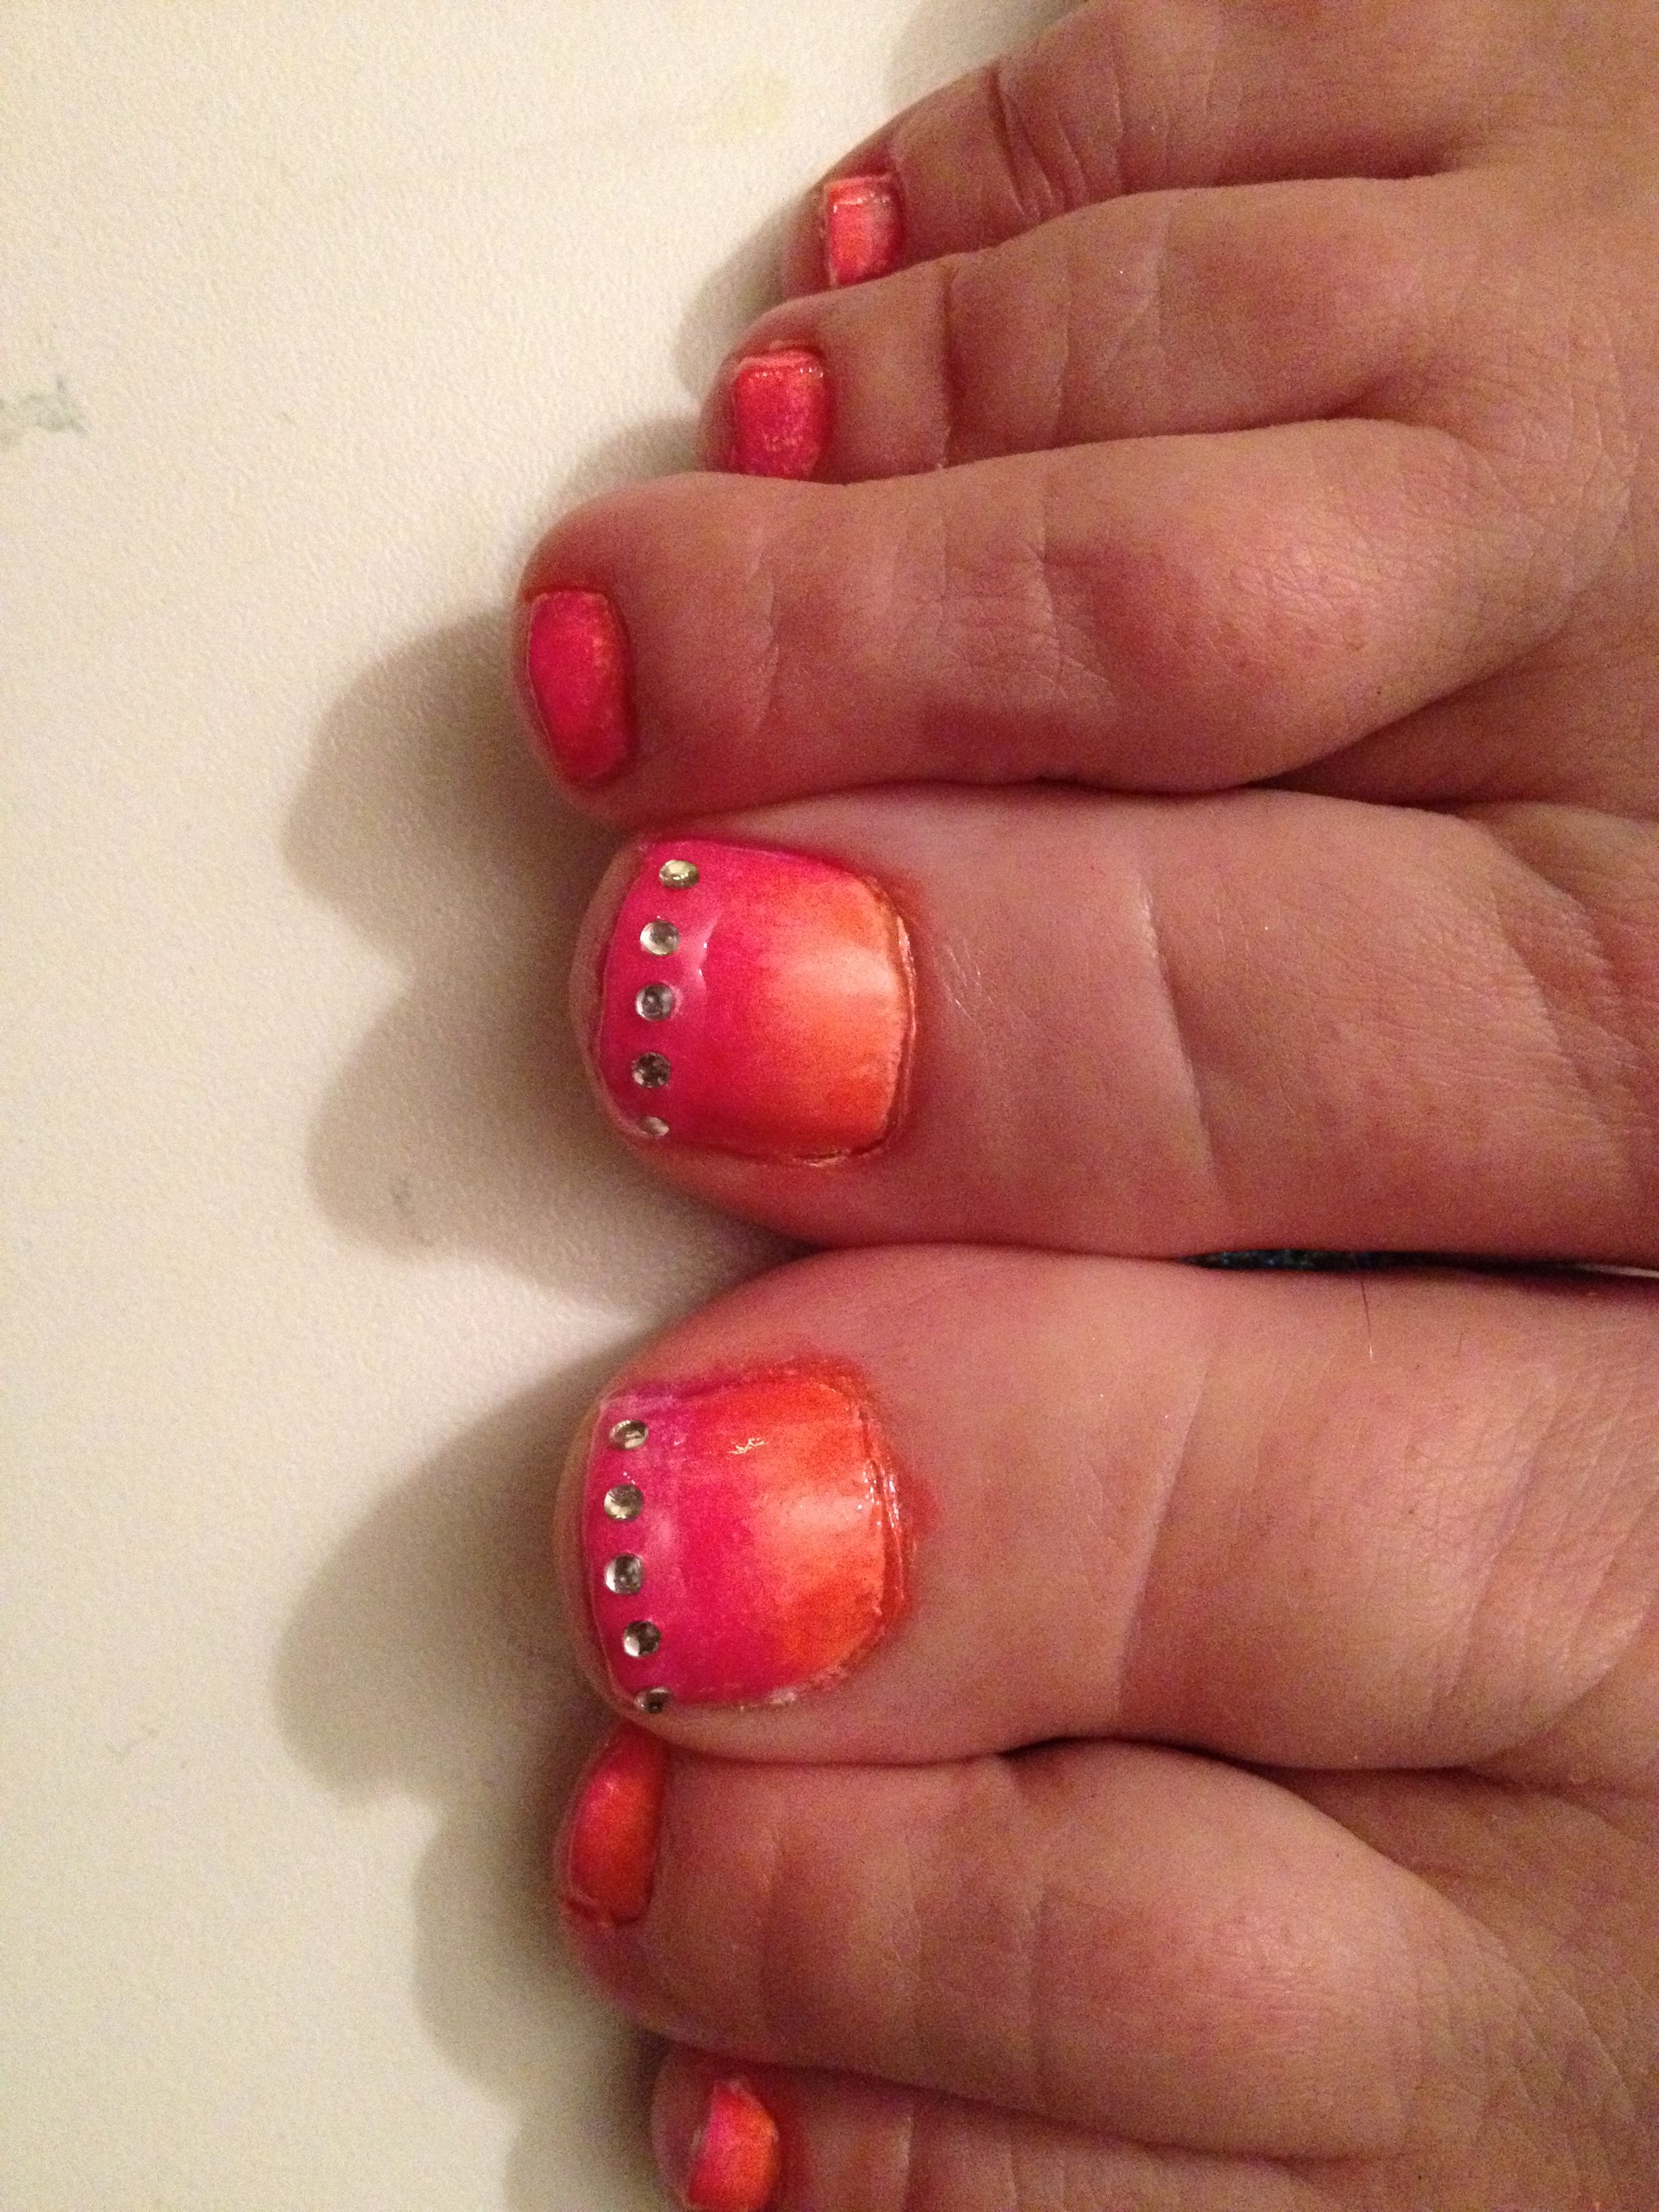 Pink to orange fade with diamonds! Easy but cute design!